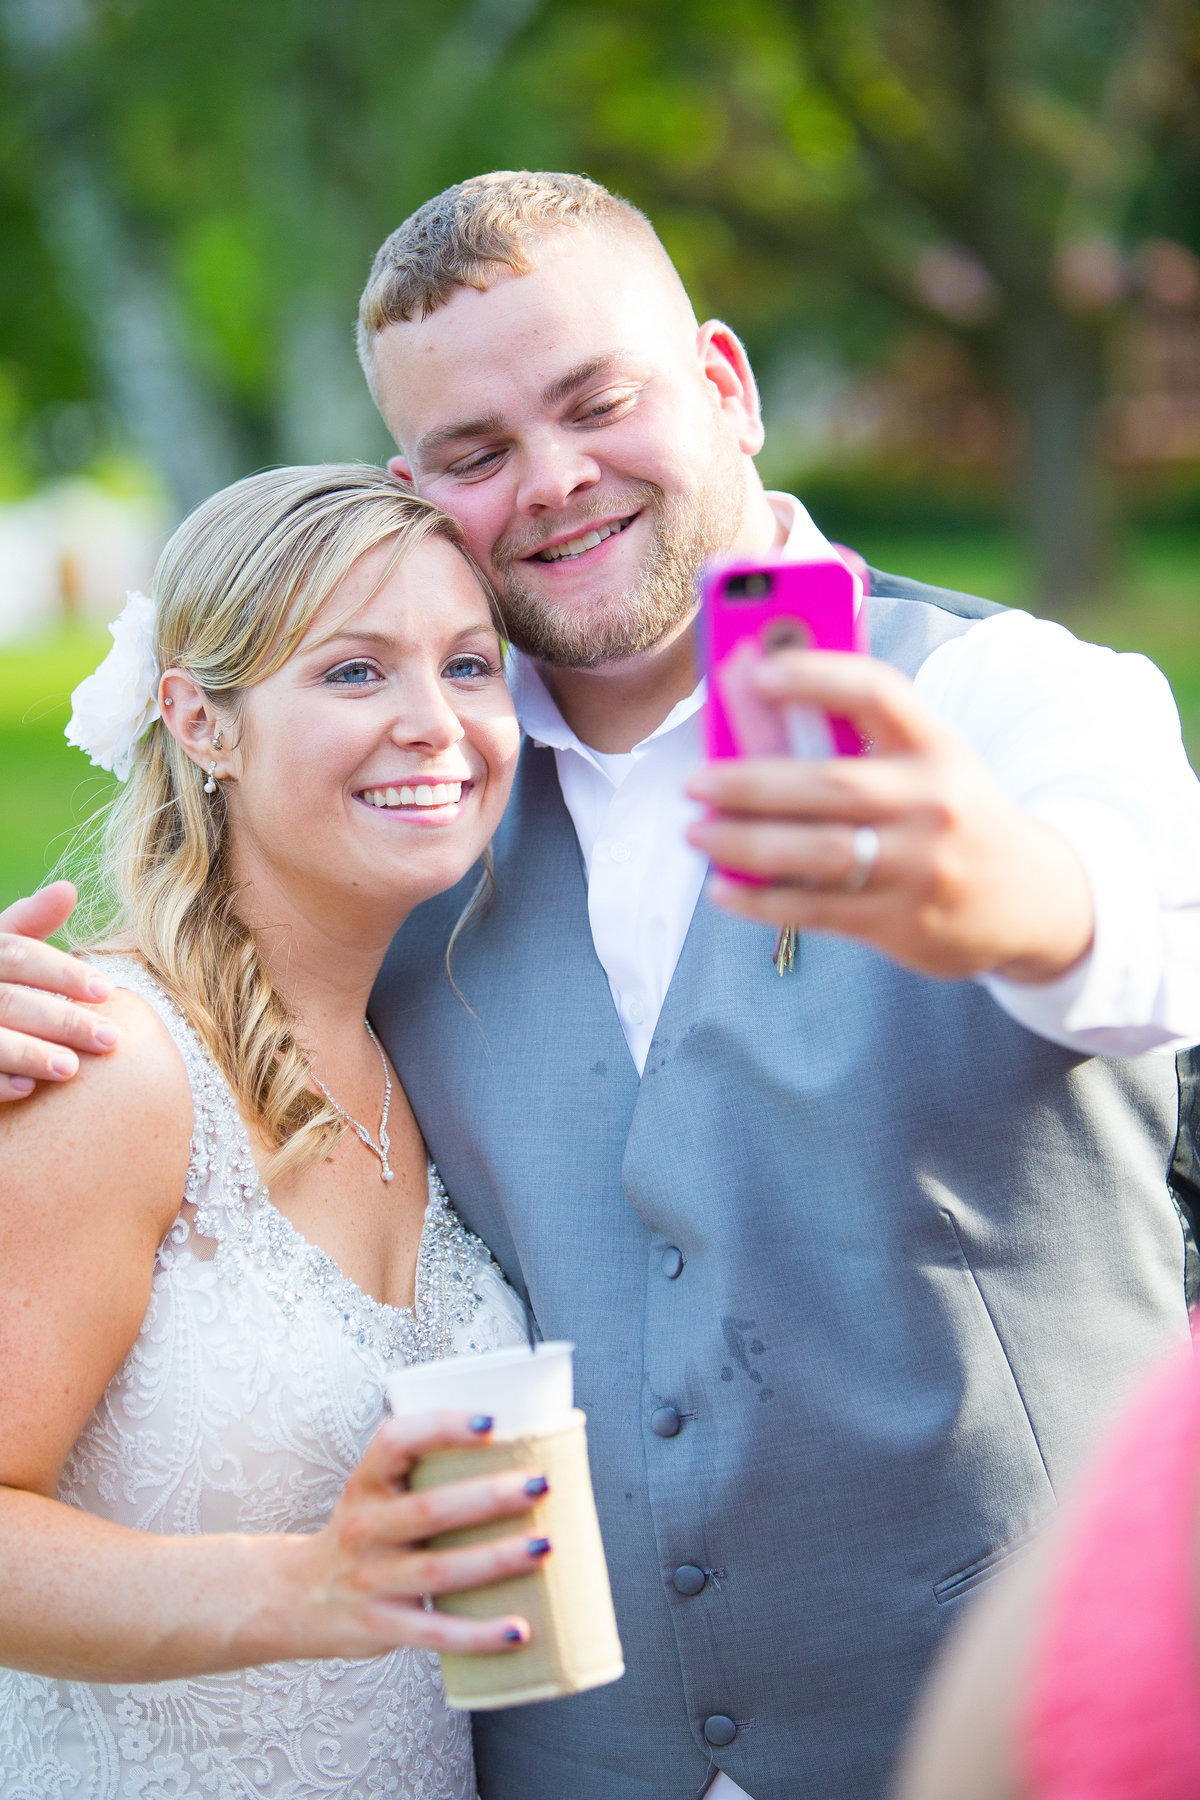 86 wedding photography bride and groomsen selfie